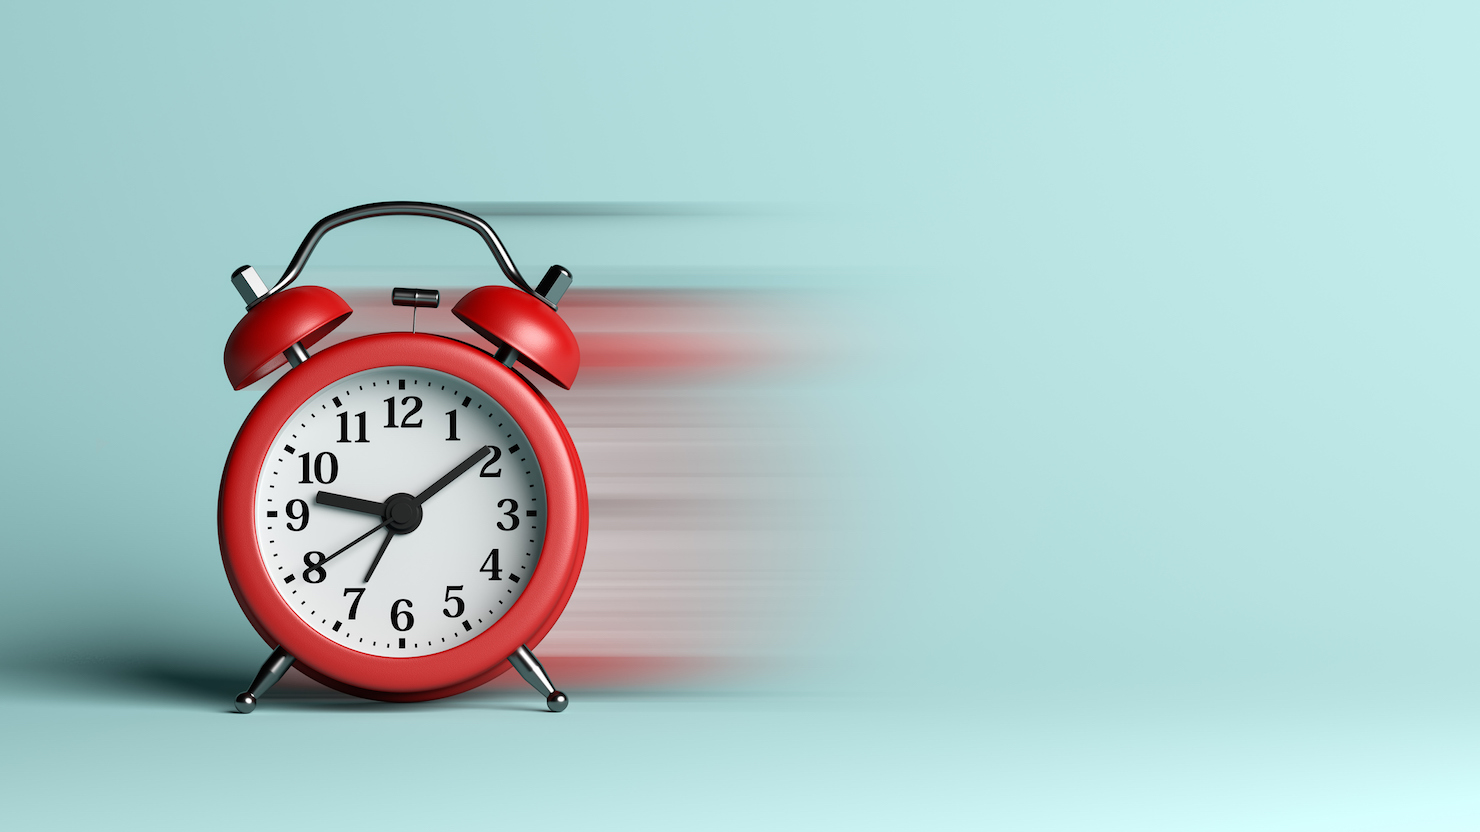 Red Alarm Clock with Blur Effect on Blue Background